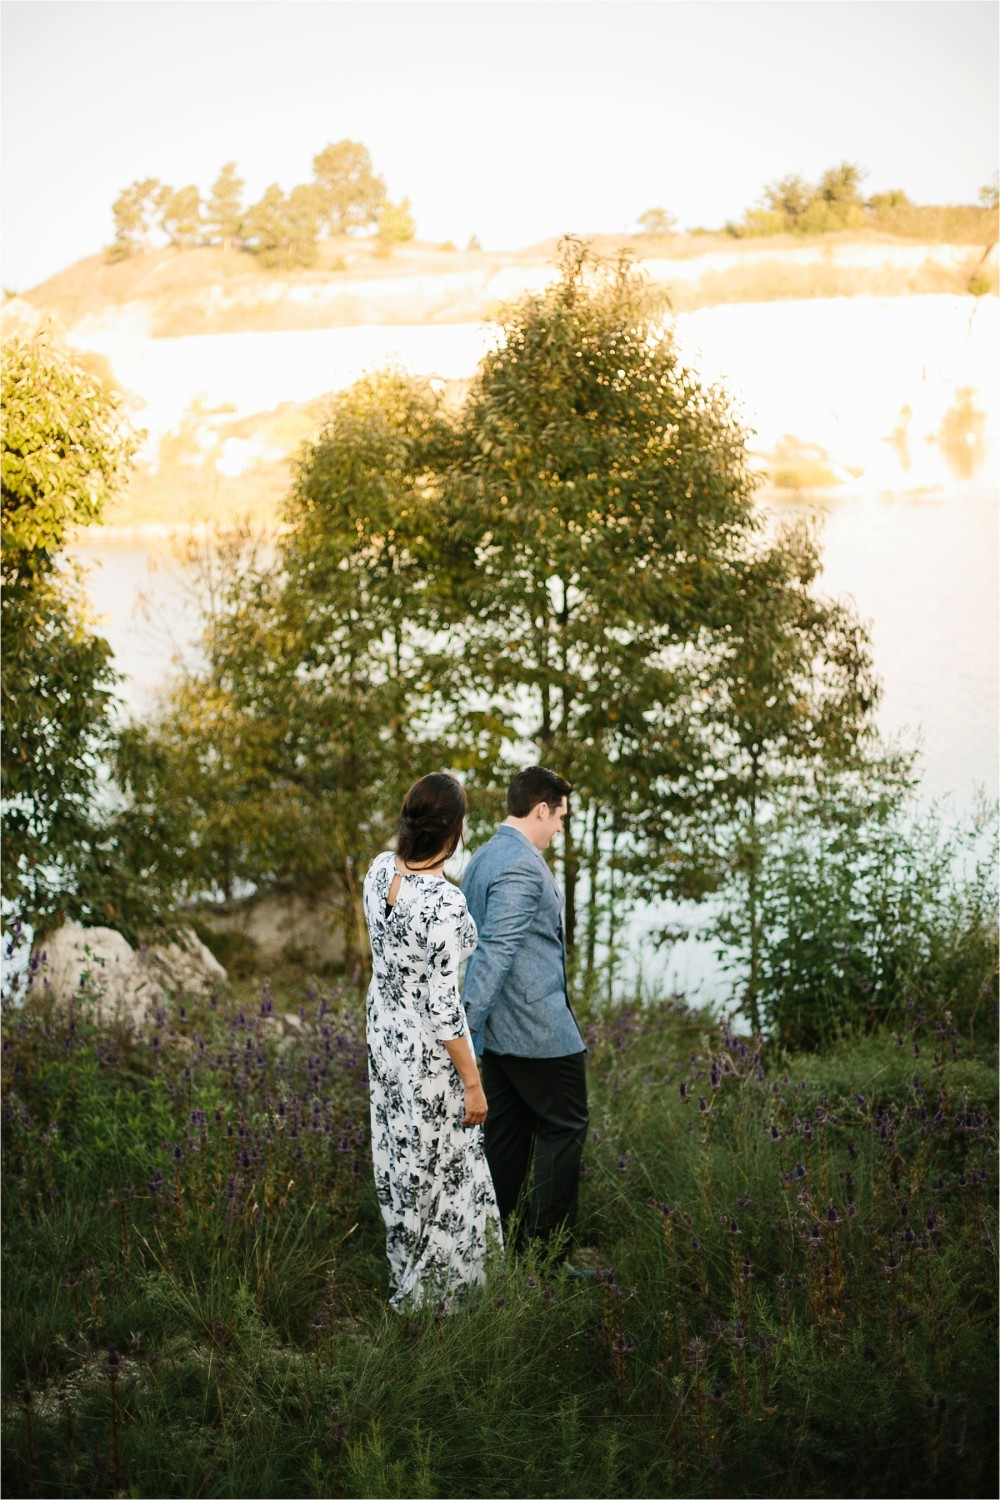 an-intimate-sunrise-session-by-north-texas-wedding-photographer-rachel-meagan-photography-_-34